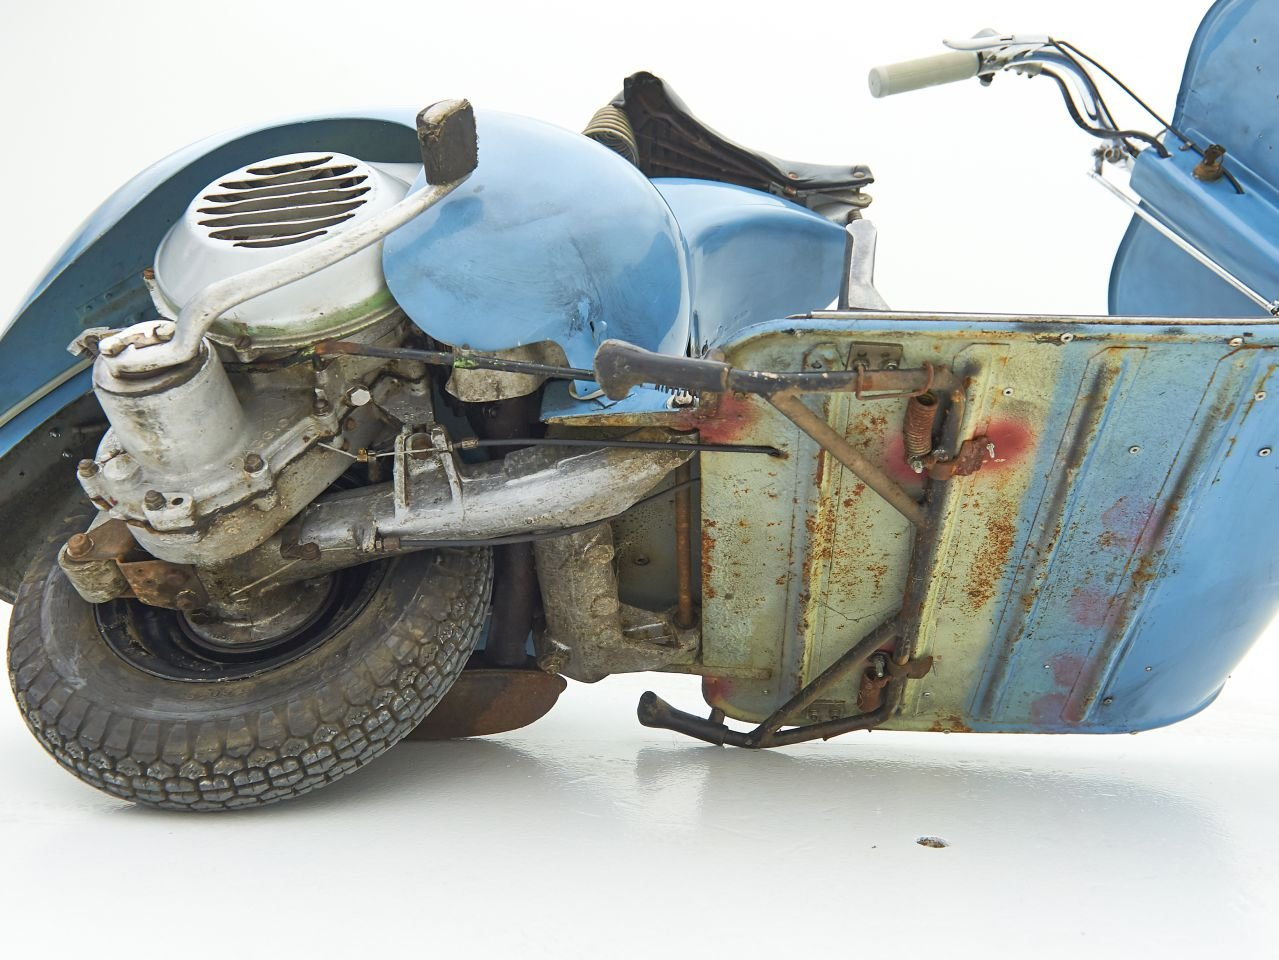 1948 VESPA V14 FARO BASSO For Sale by Auction (picture 6 of 6)